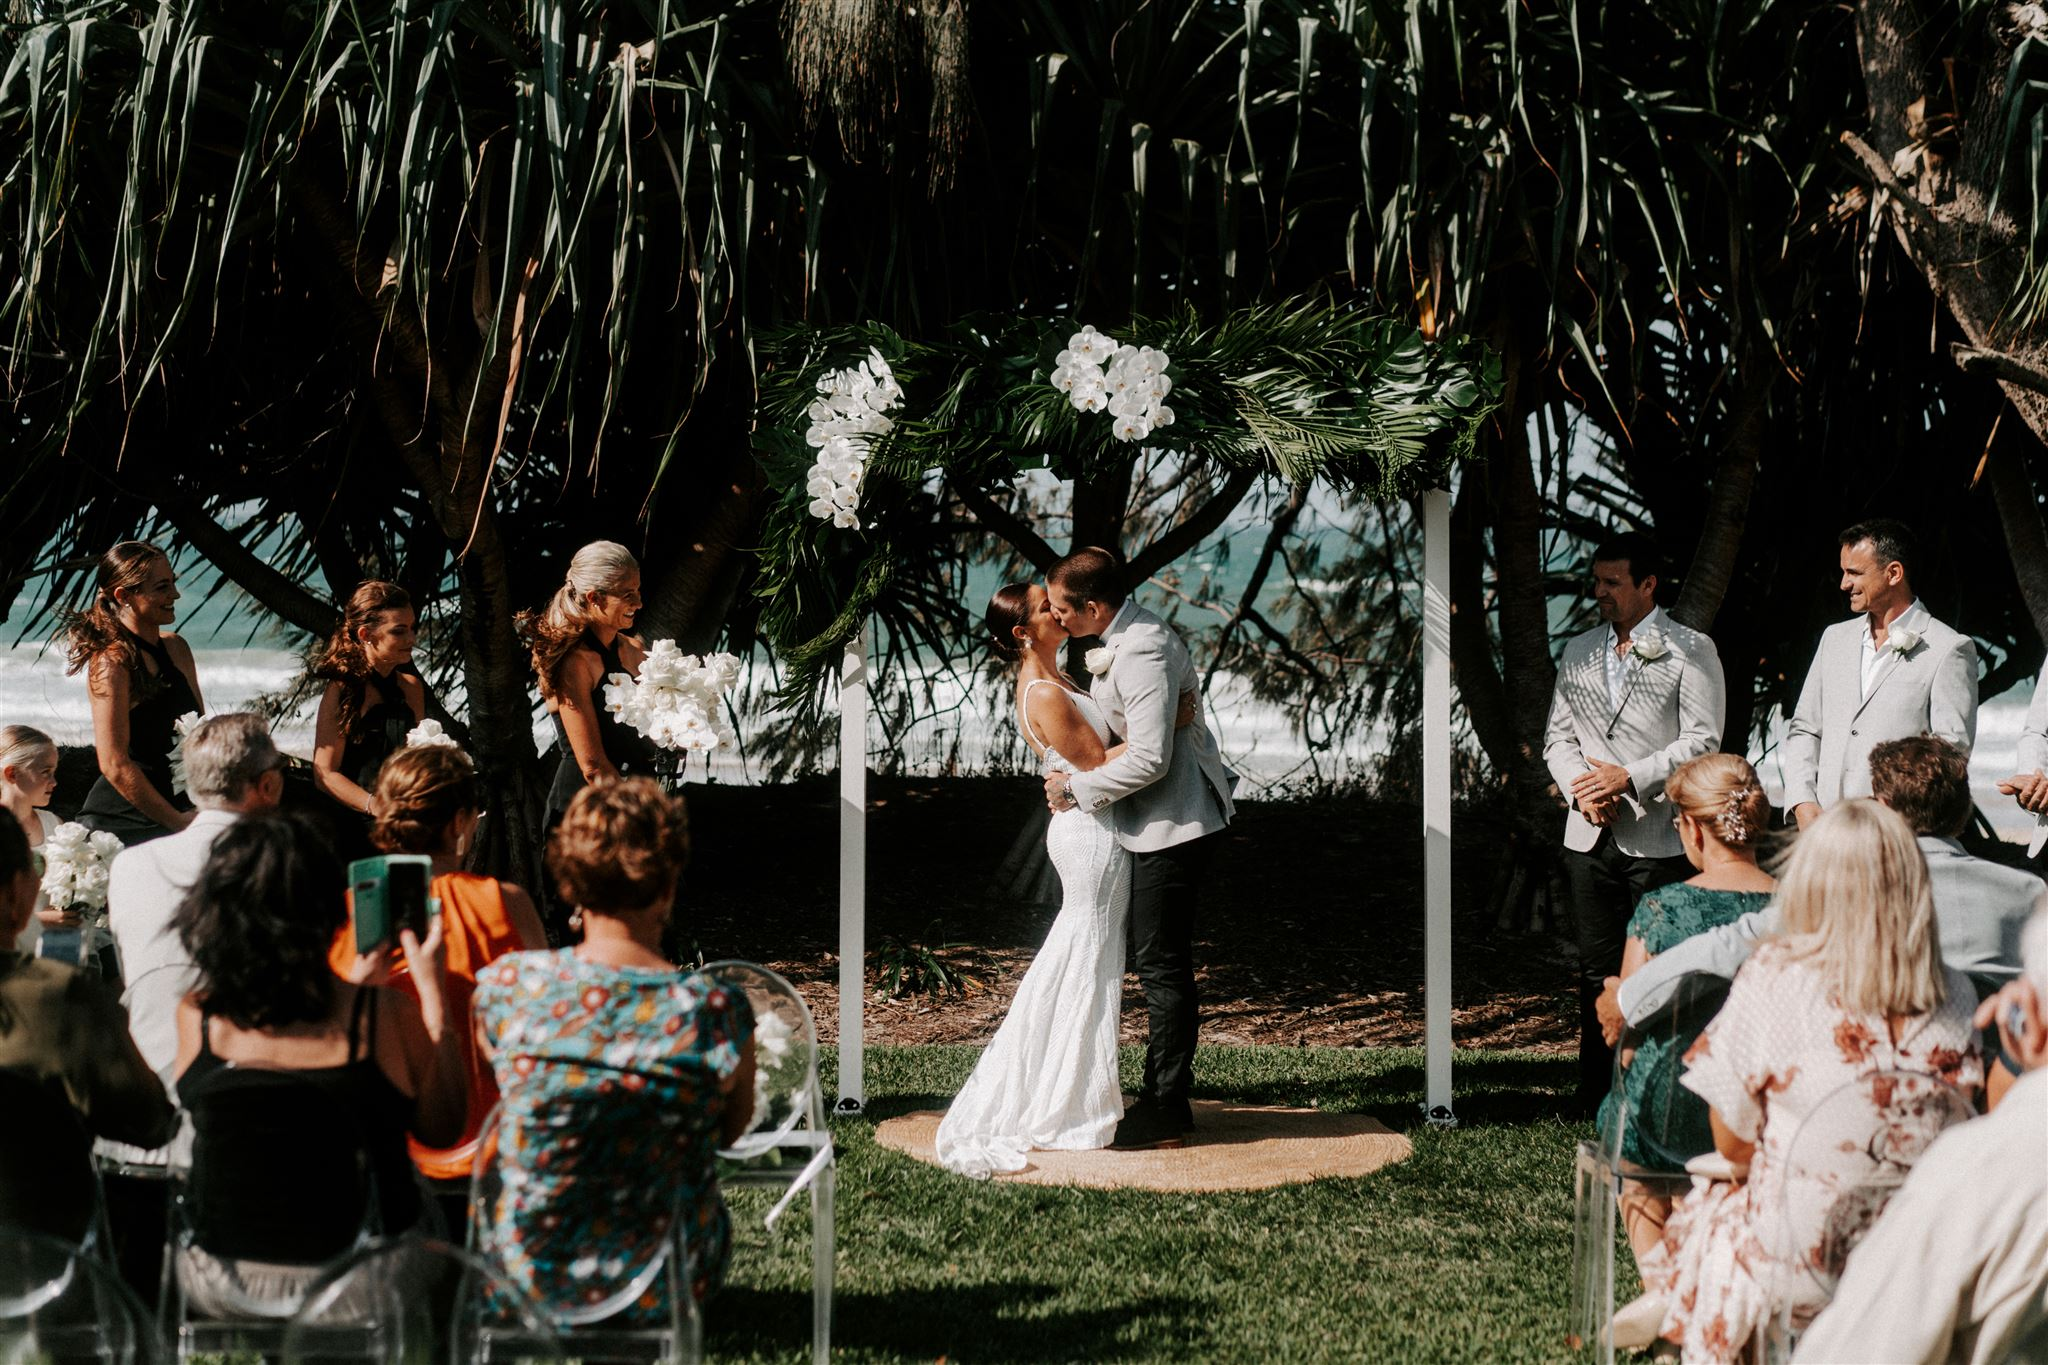 Ceremony arbour design featuring tropical leaves and orchids